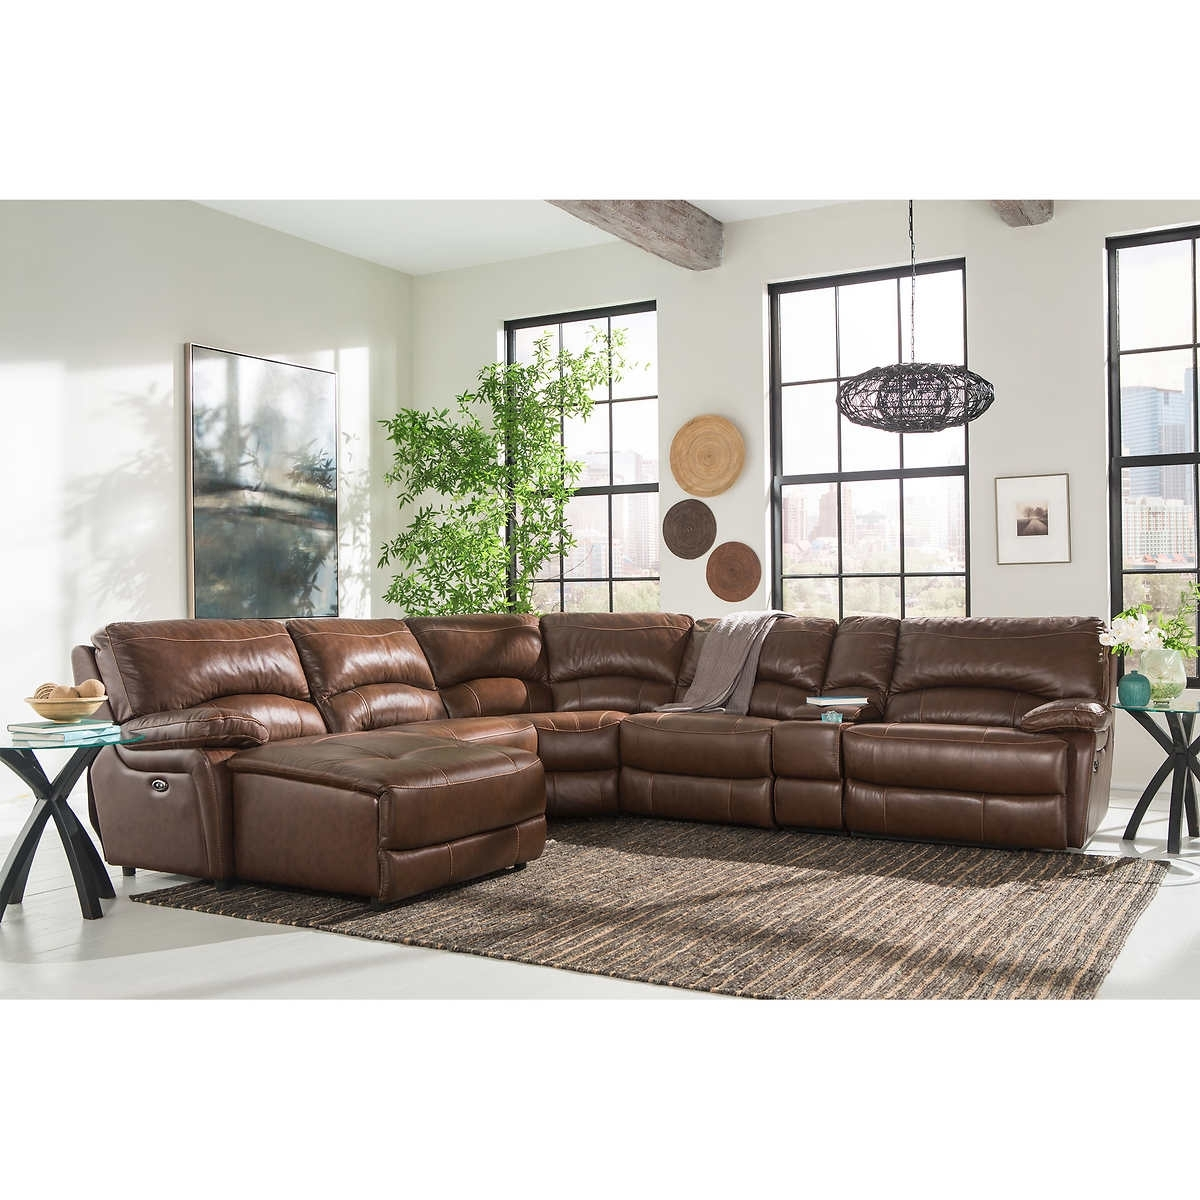 6 Piece Leather Sectional Sofas Intended For Preferred Inspirational 6 Piece  Leather Sectional Sofa 56 For